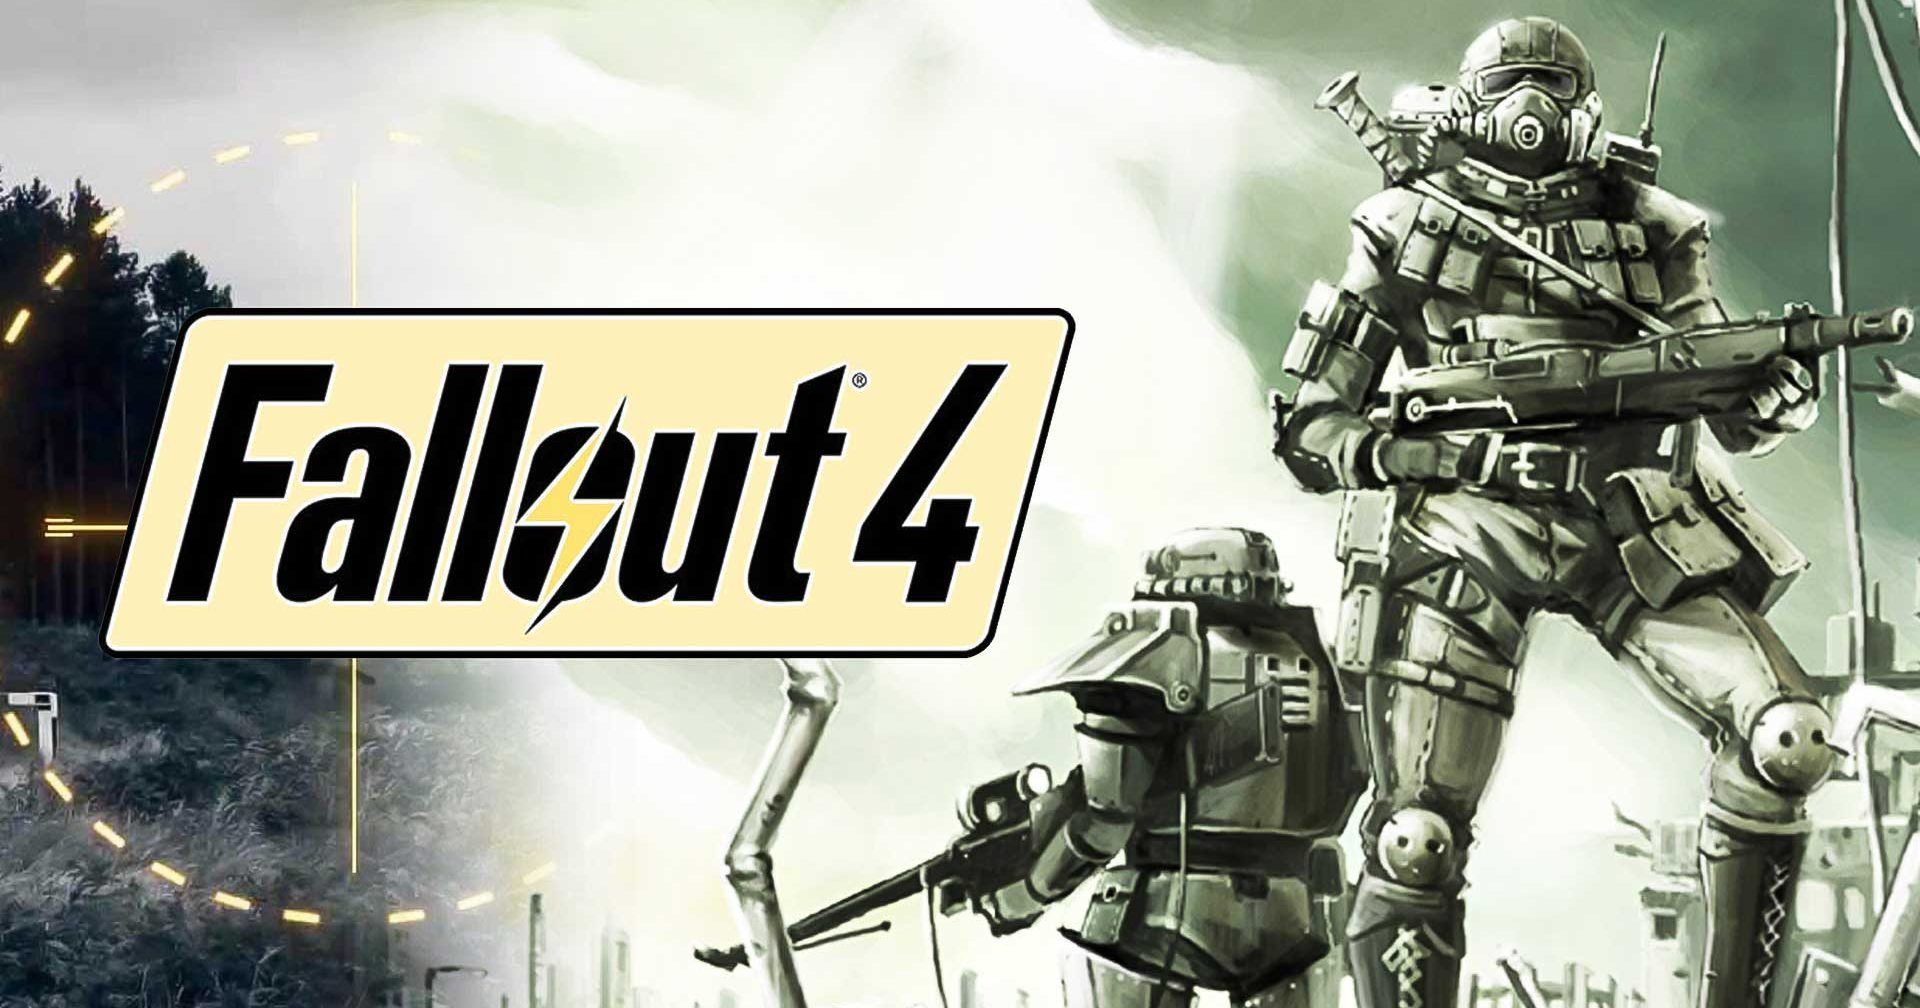 10 Fallout 4 Memes That Are Still Hilarious Today | ScreenRant